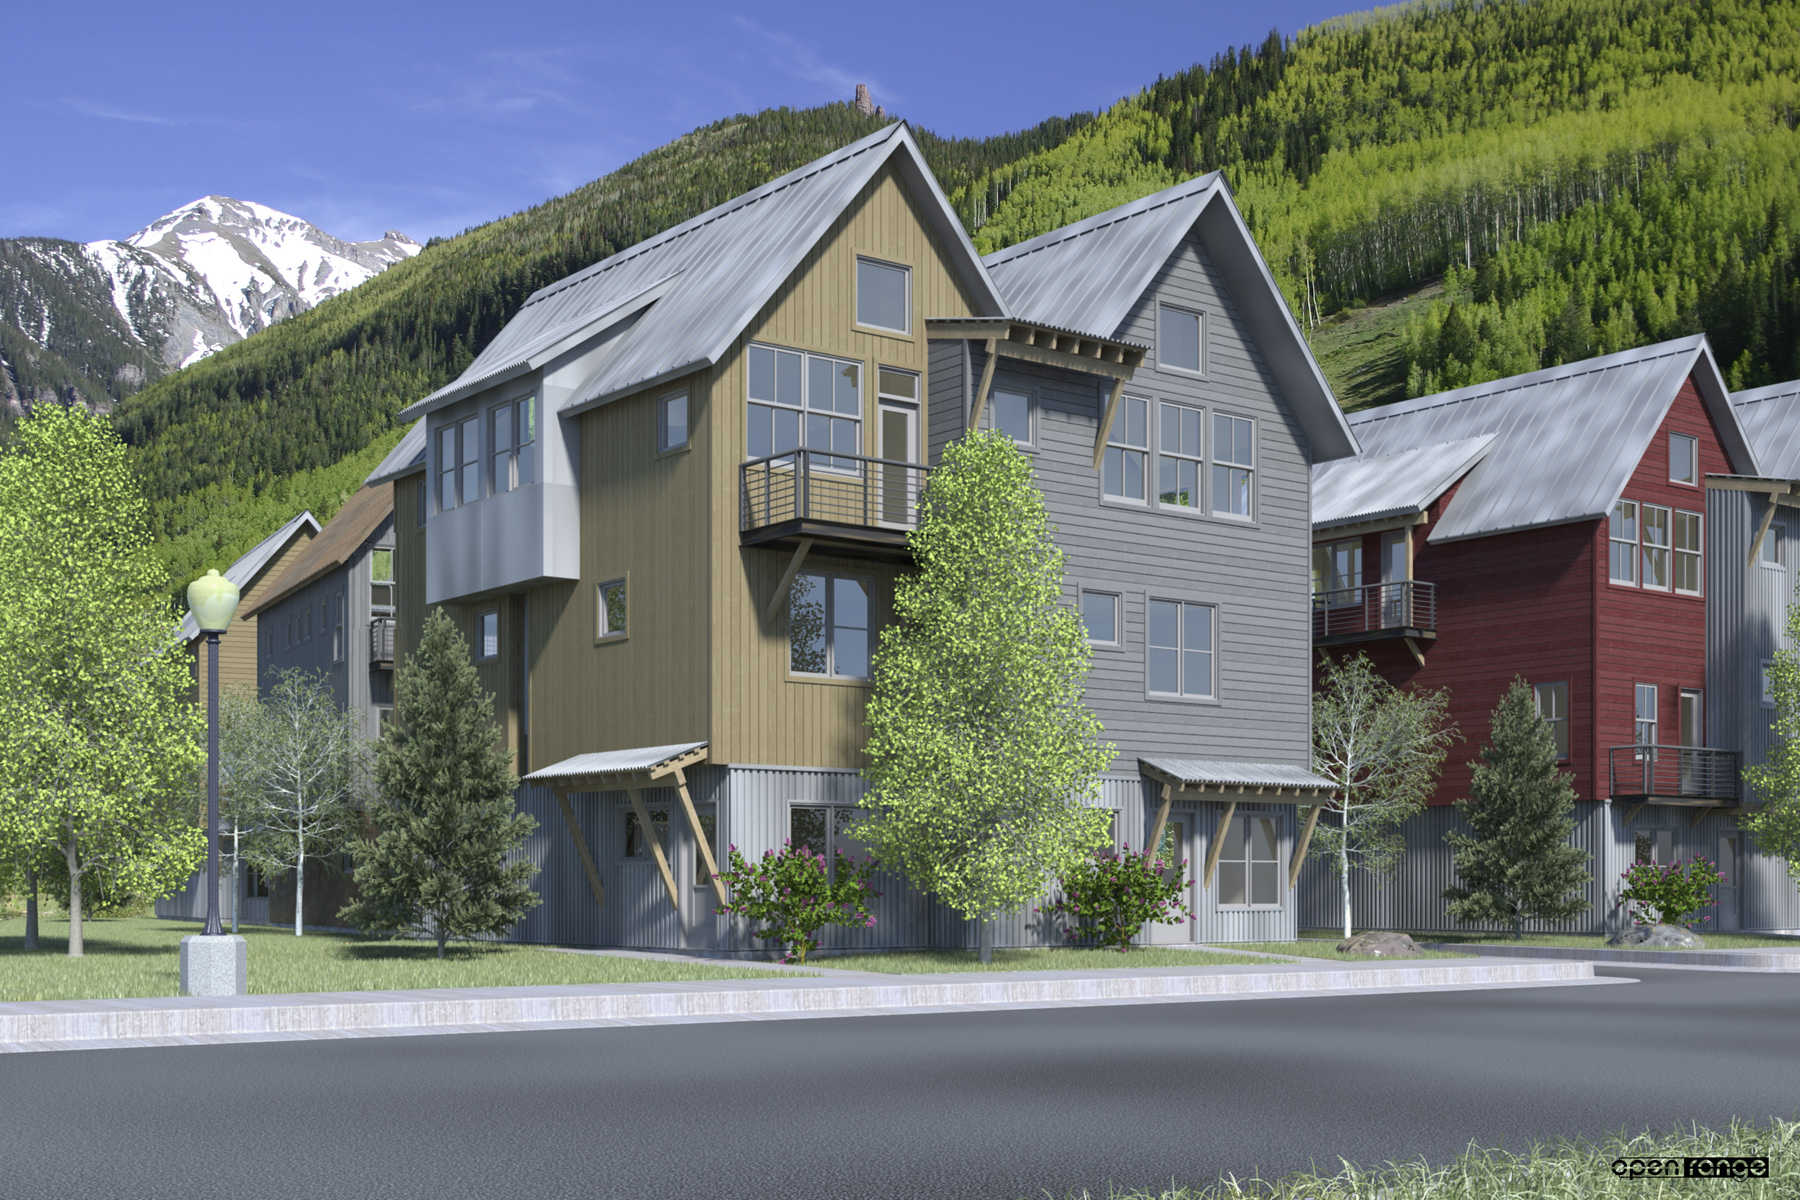 Townhouse for Sale at 240 South Mahoney Drive, Unit 2 Telluride, Colorado, 81435 United States